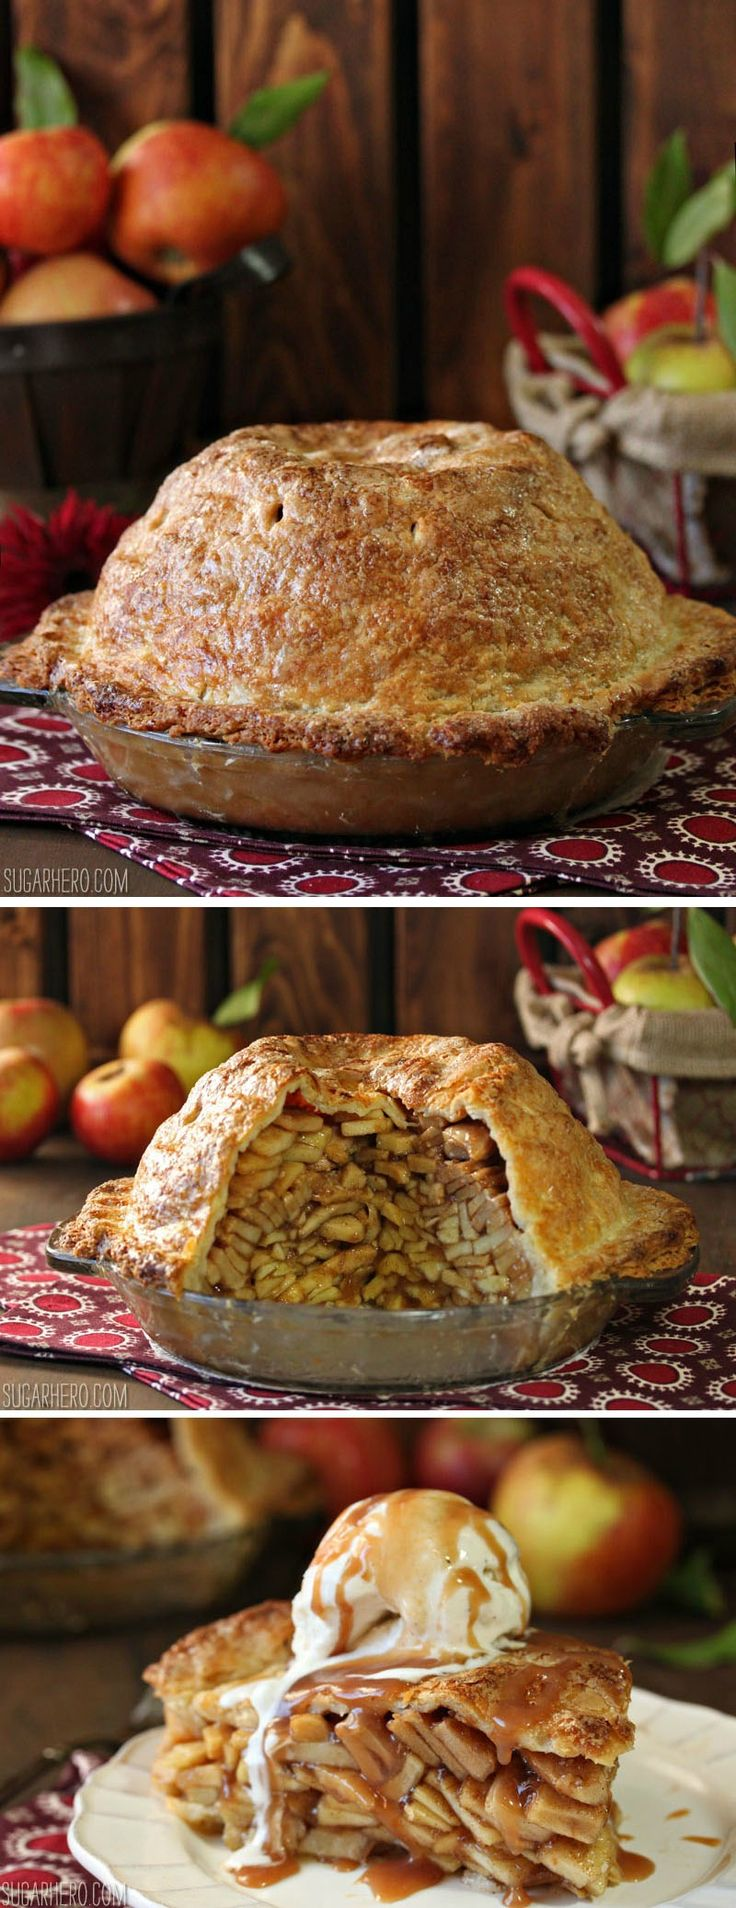 Mile High Apple Pie - the most epic apple pie ever! | From SugarHero.com